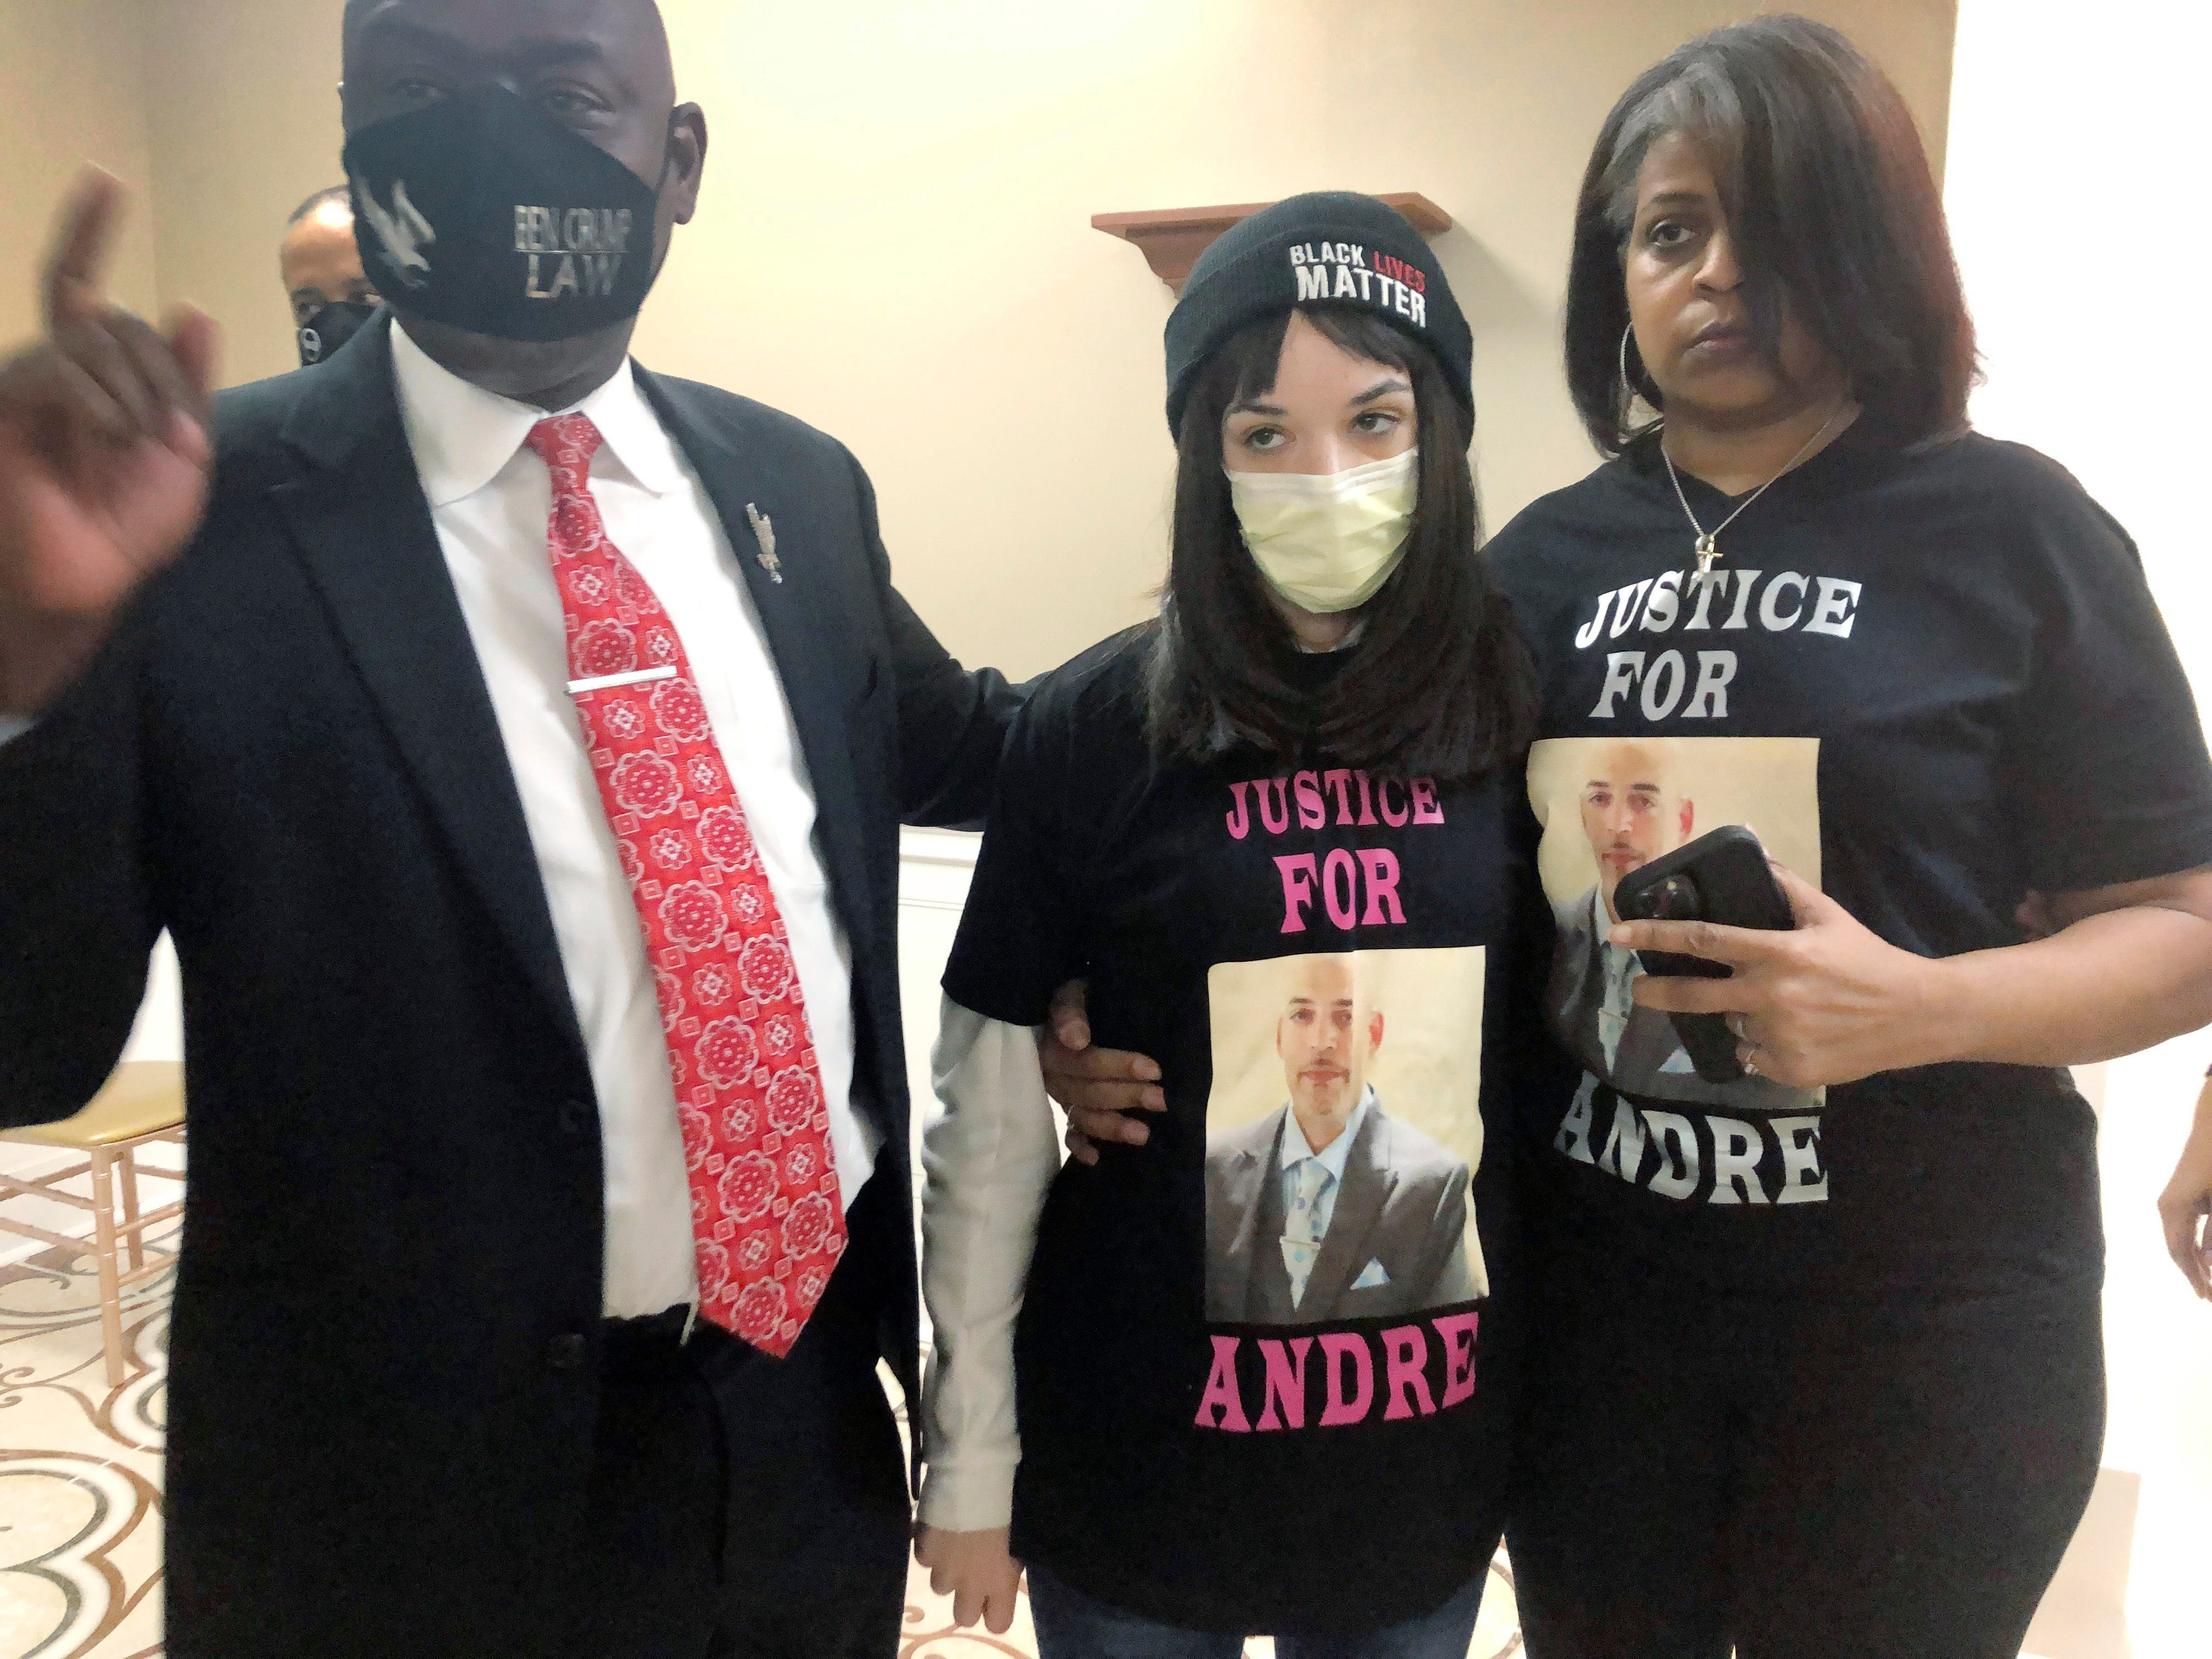 Columbus approves $10M settlement with family of man fatally shot by officer 2